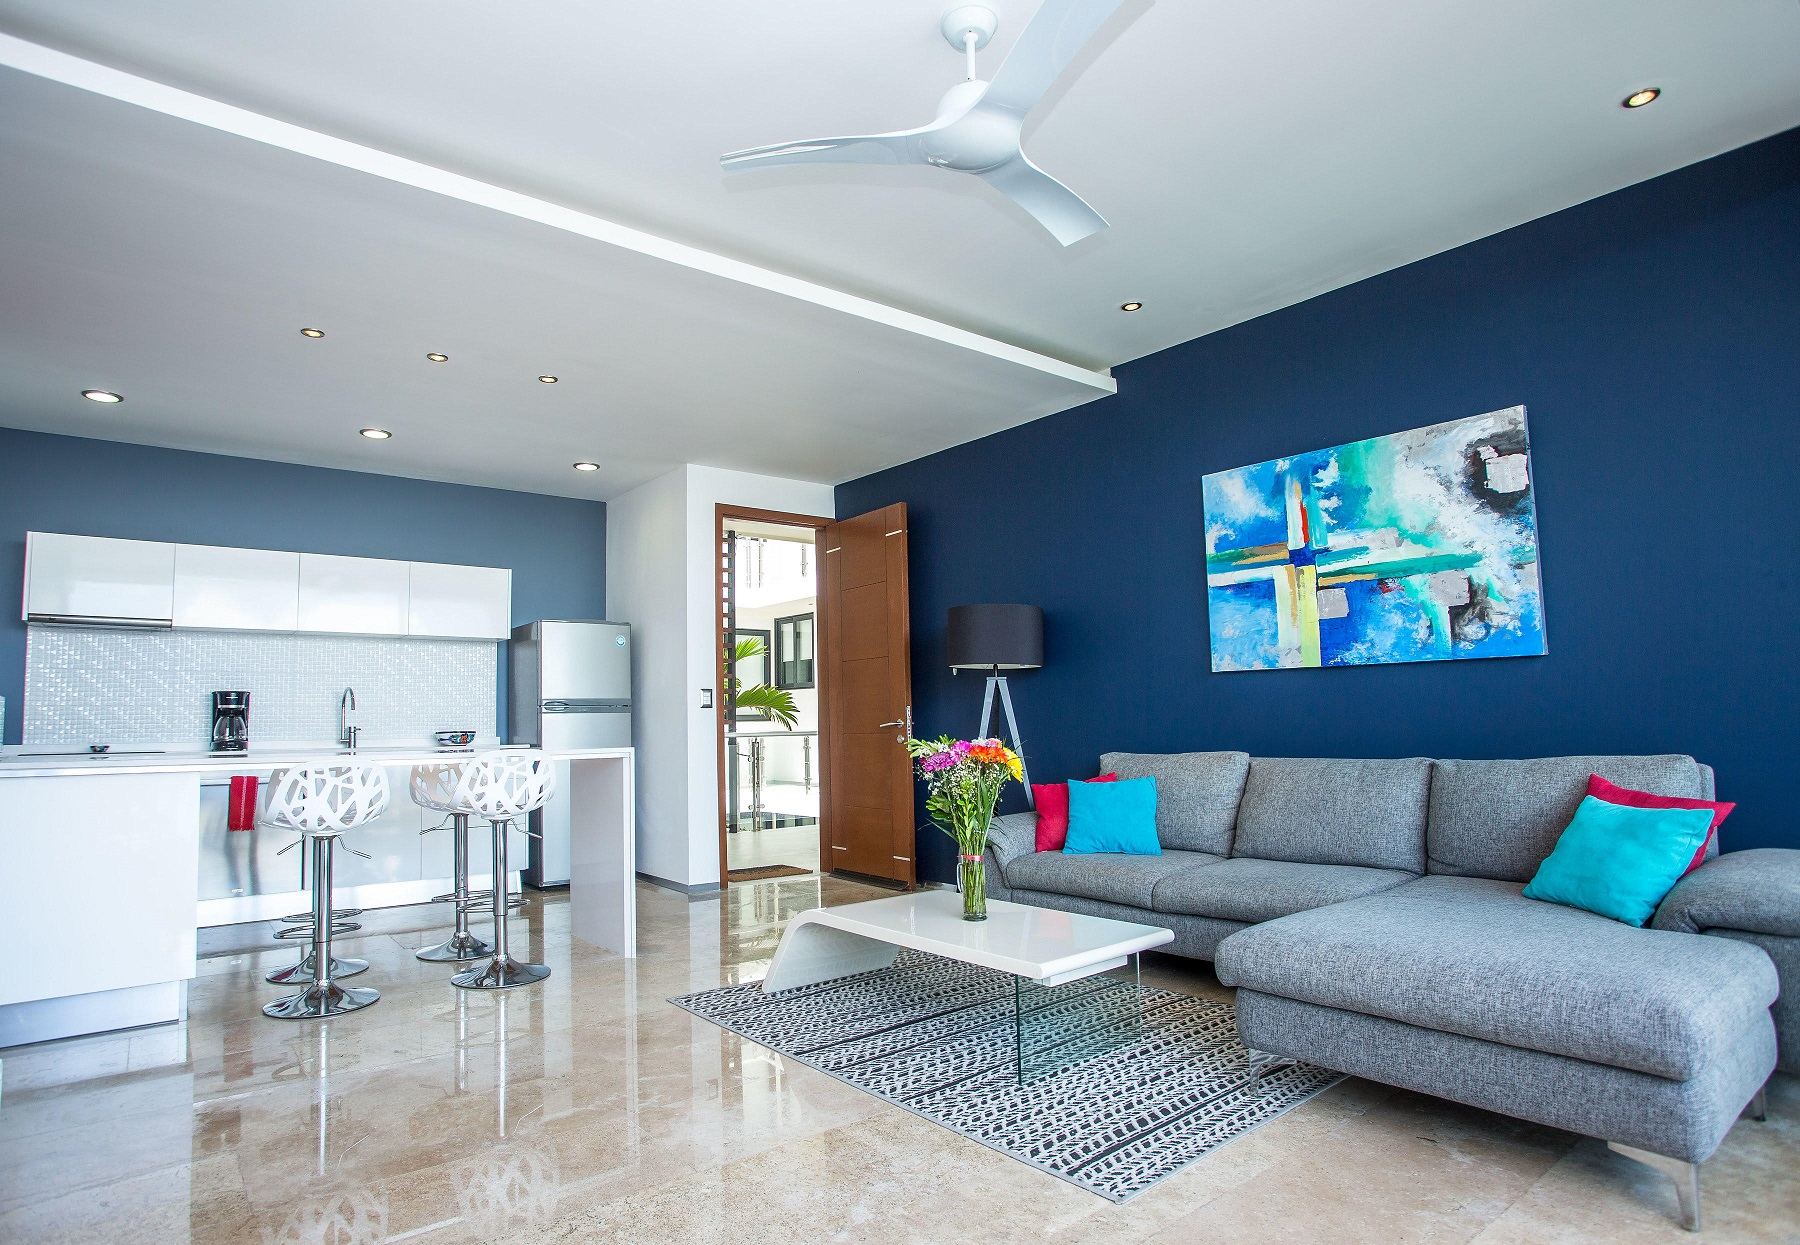 Condo for sale in Coco Beach Playa del Carmen